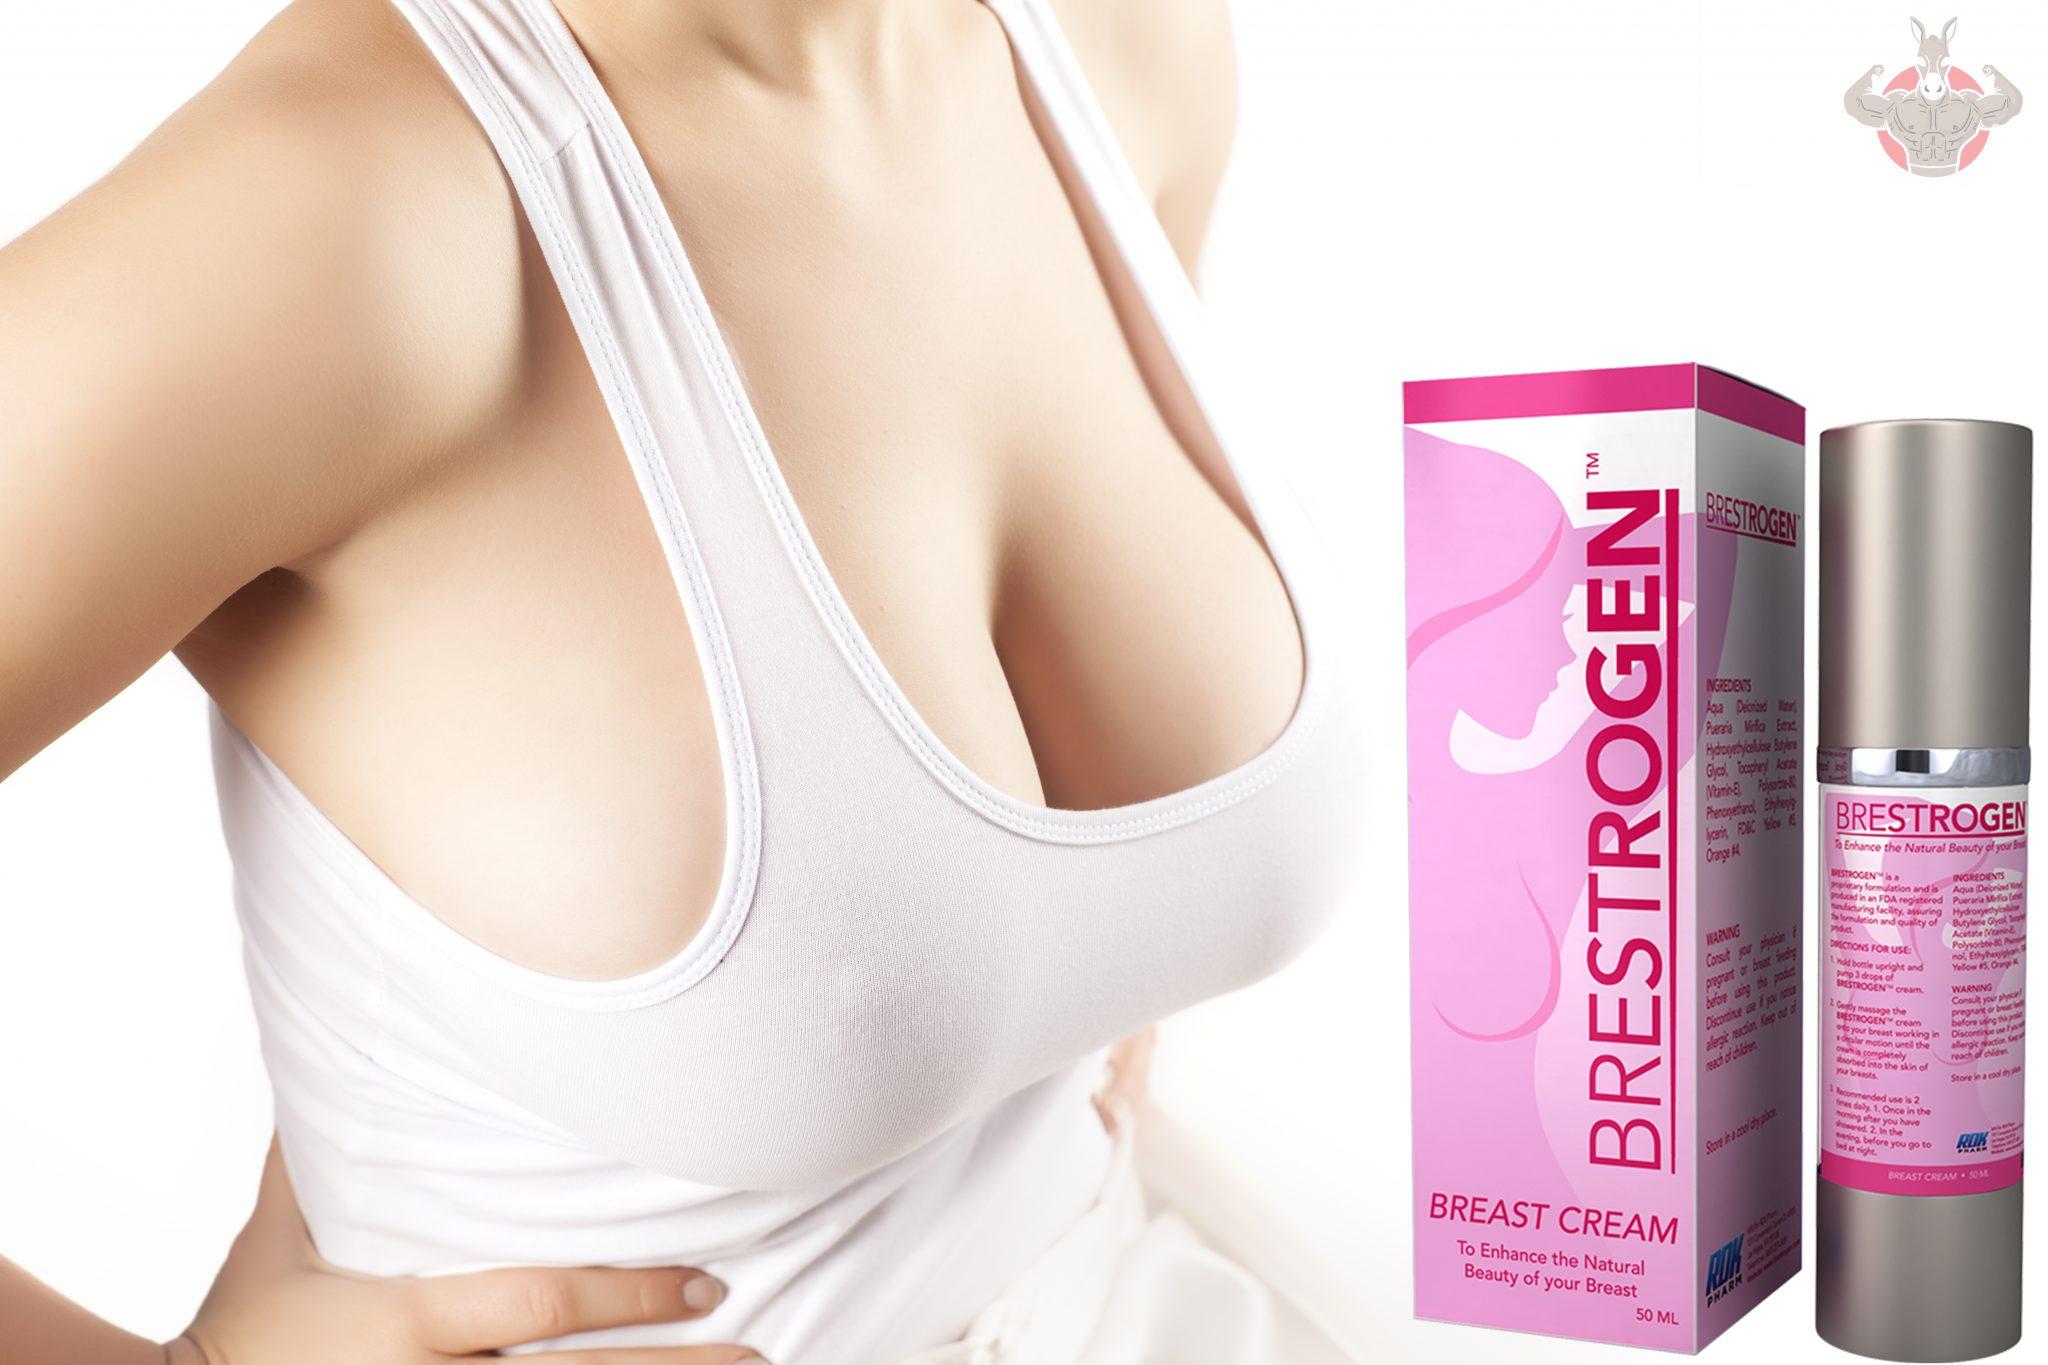 Image result for Brestrogen Will Help You Get Rid Of Small Breasts